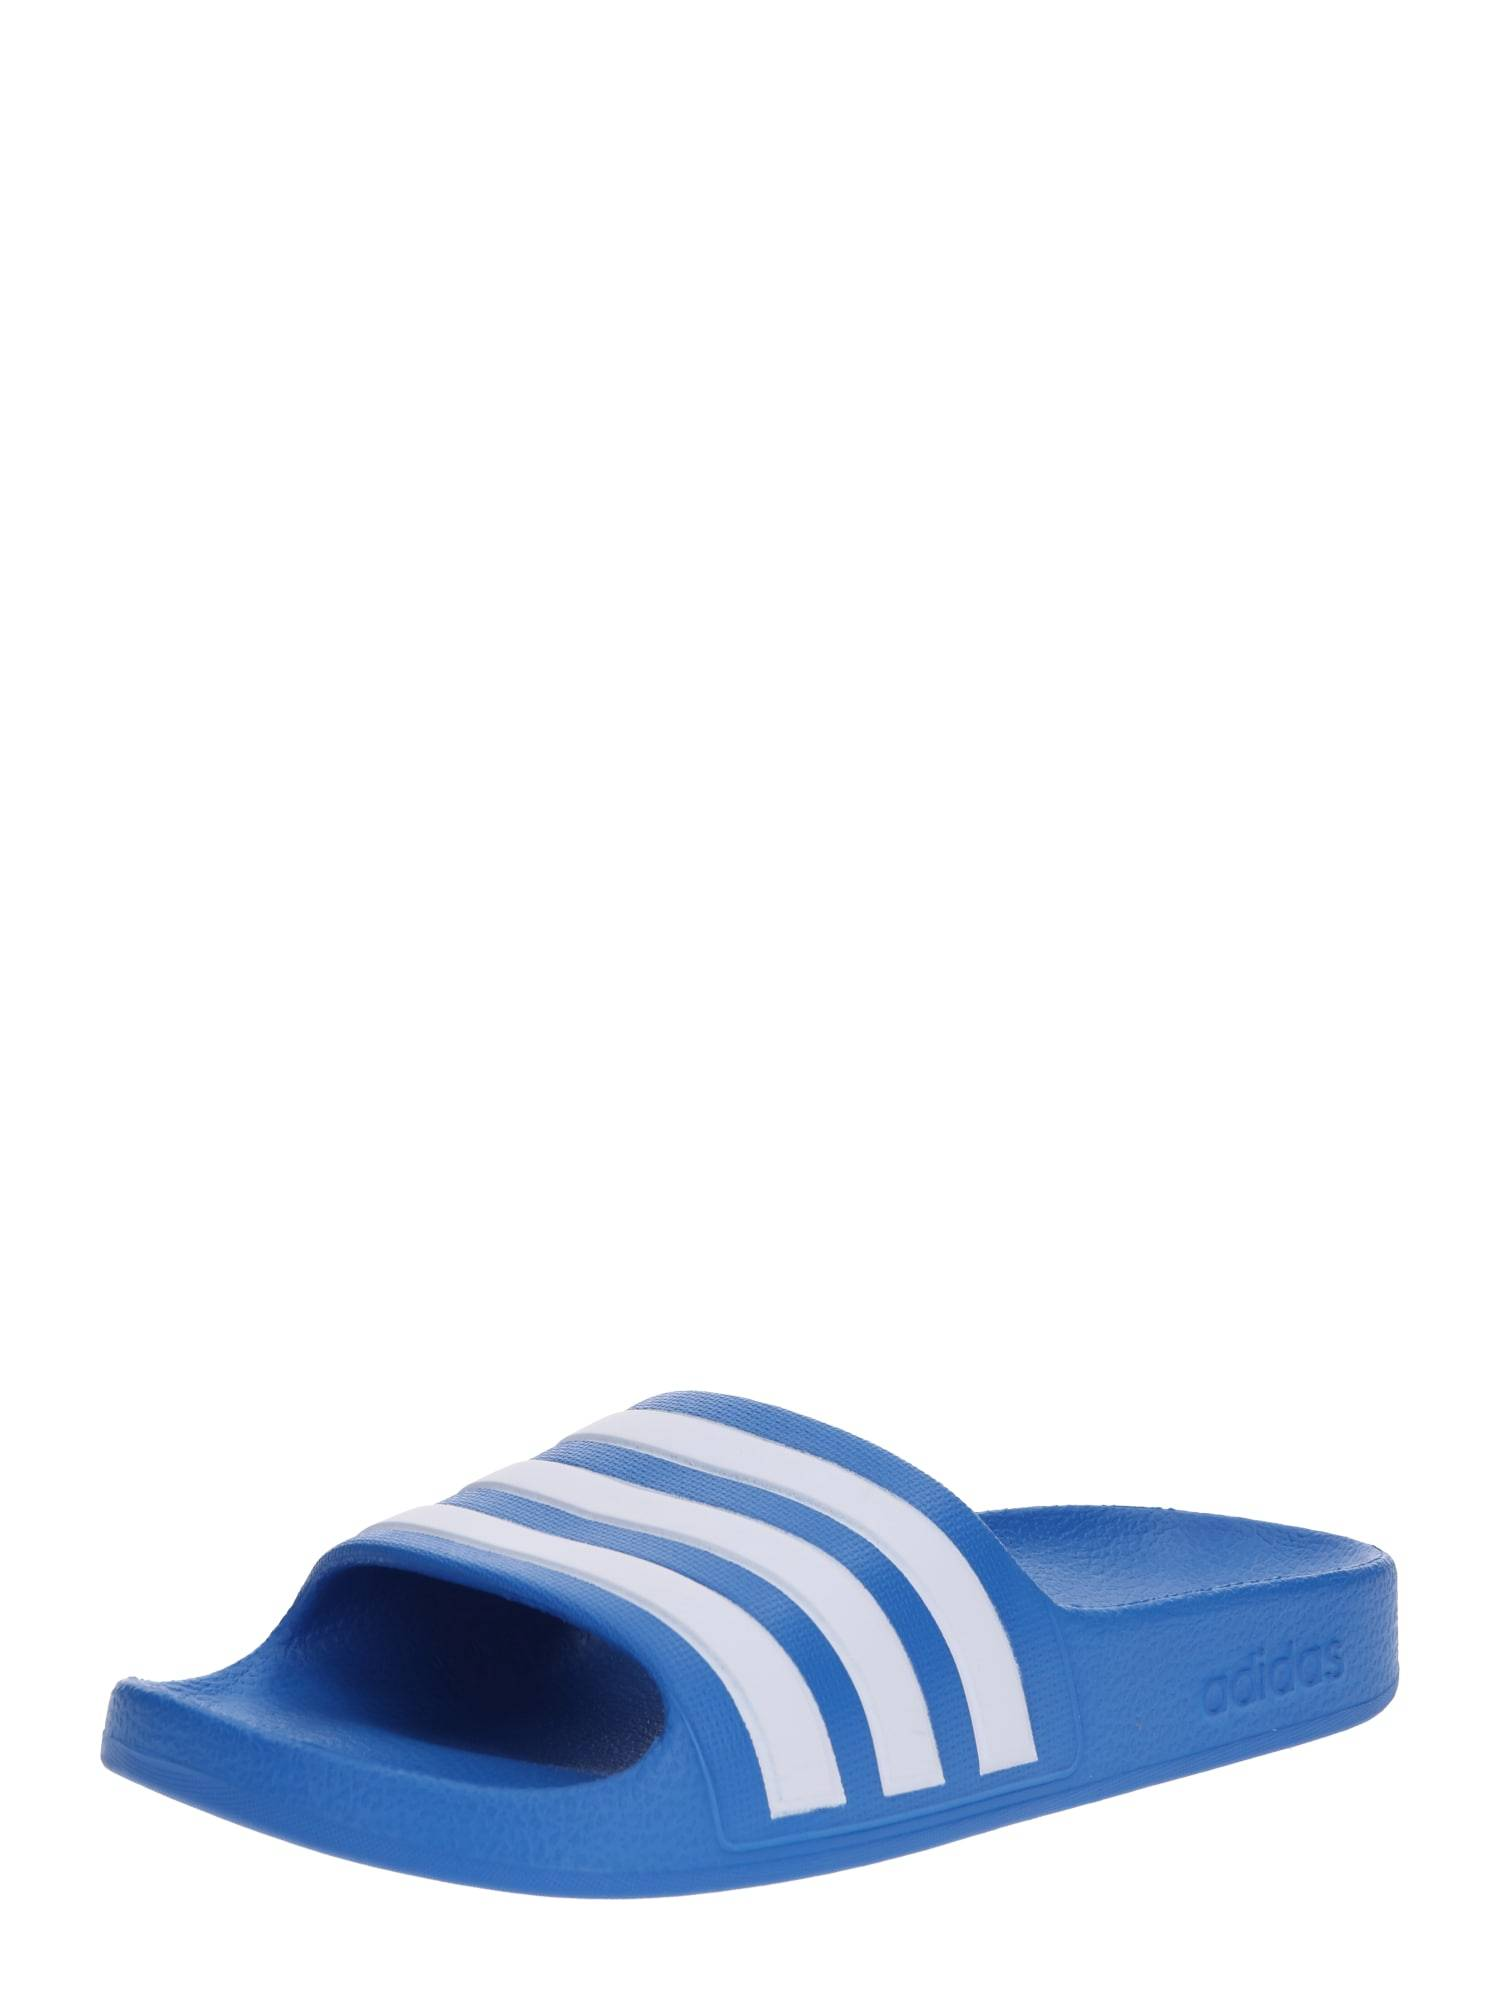 ADIDAS PERFORMANCE Claquettes / Tongs  - Bleu - Taille: 29 - boy